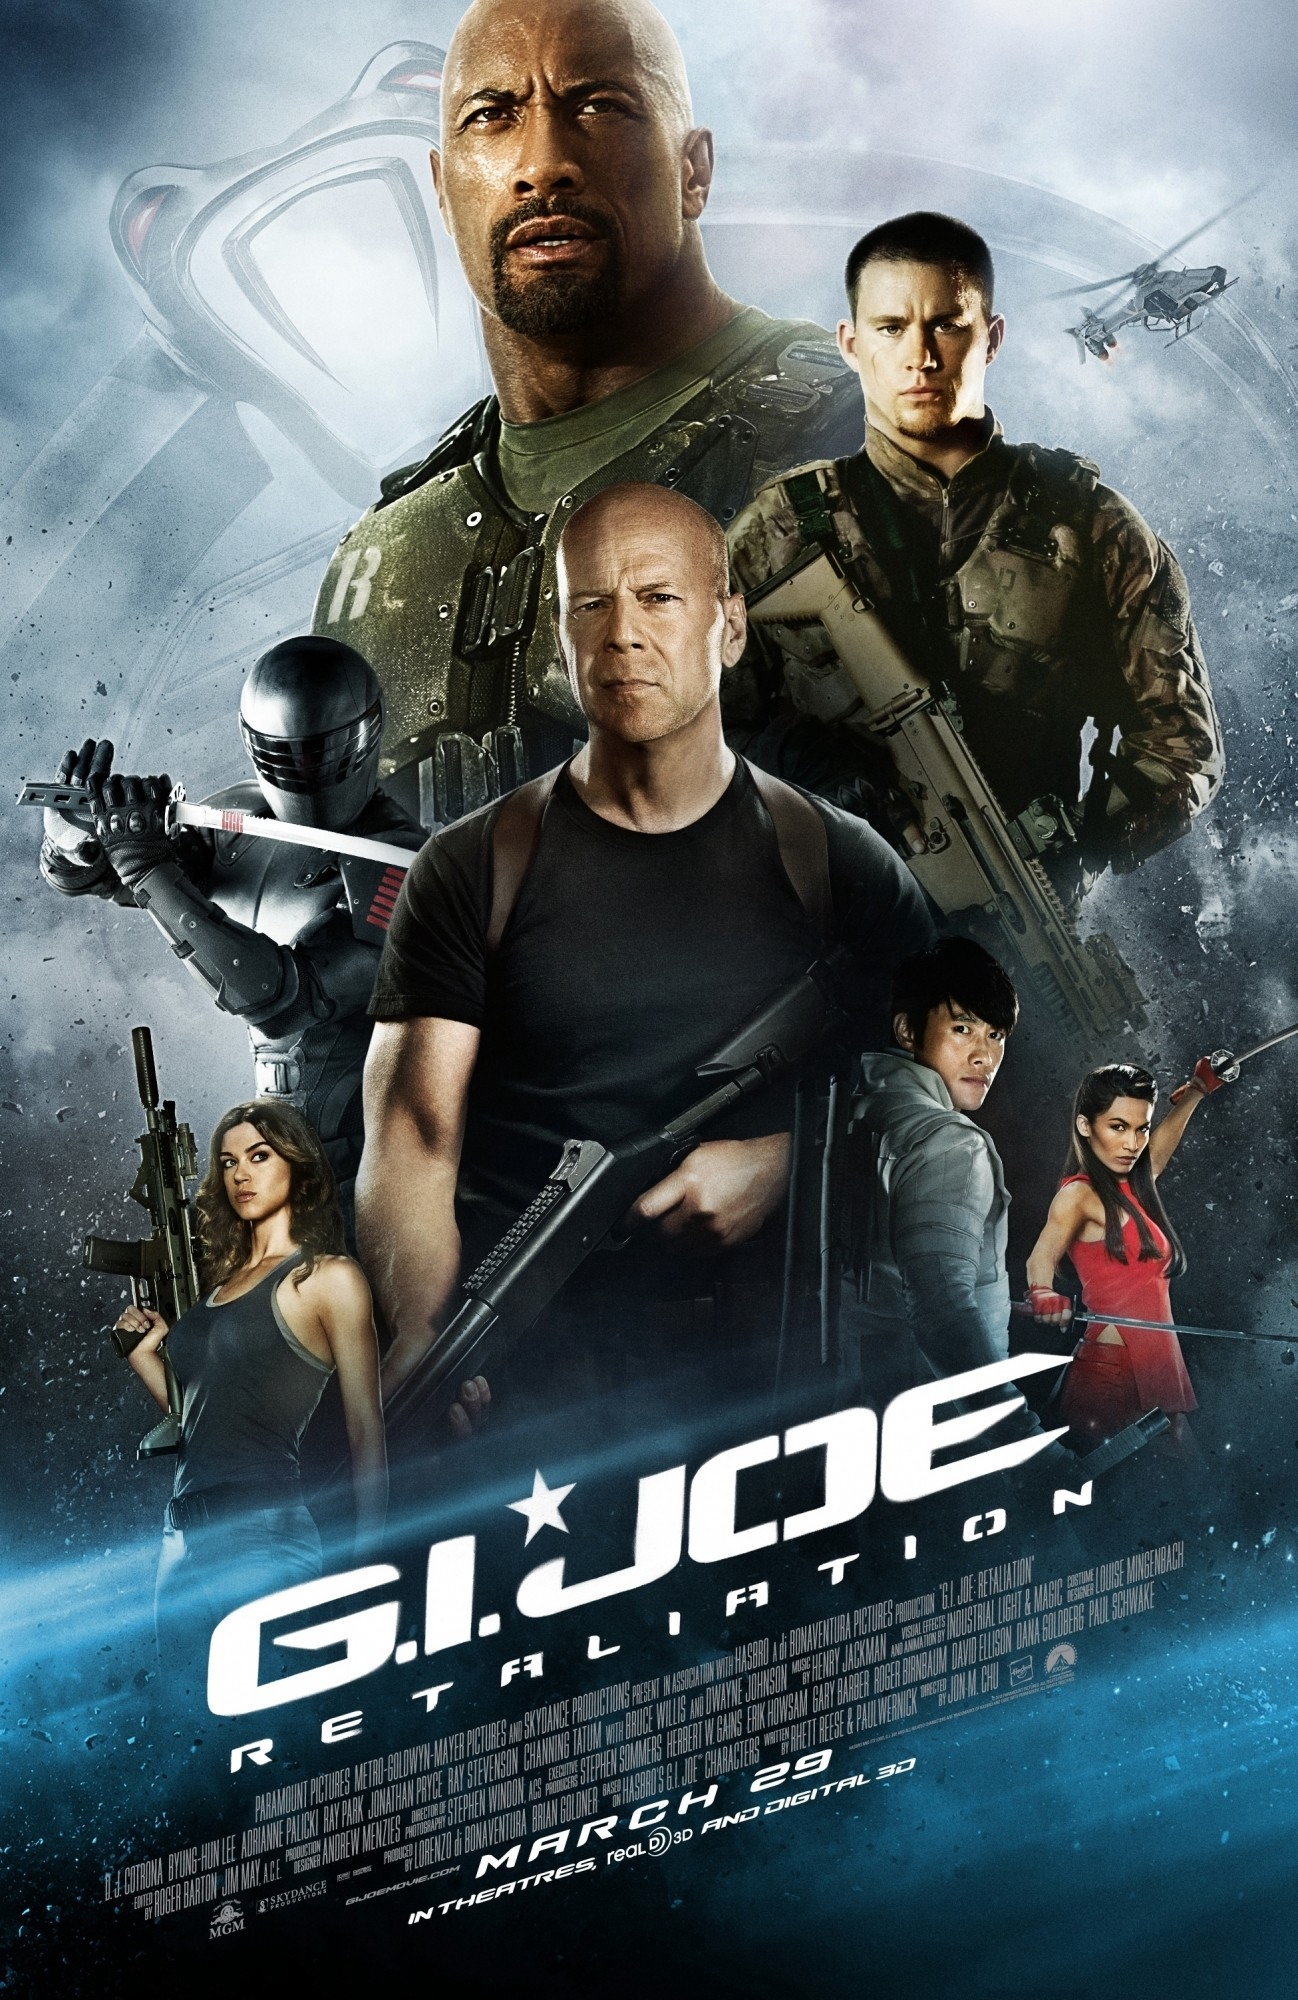 fast and furious 6 tamil dubbed movie free download tamilrockers